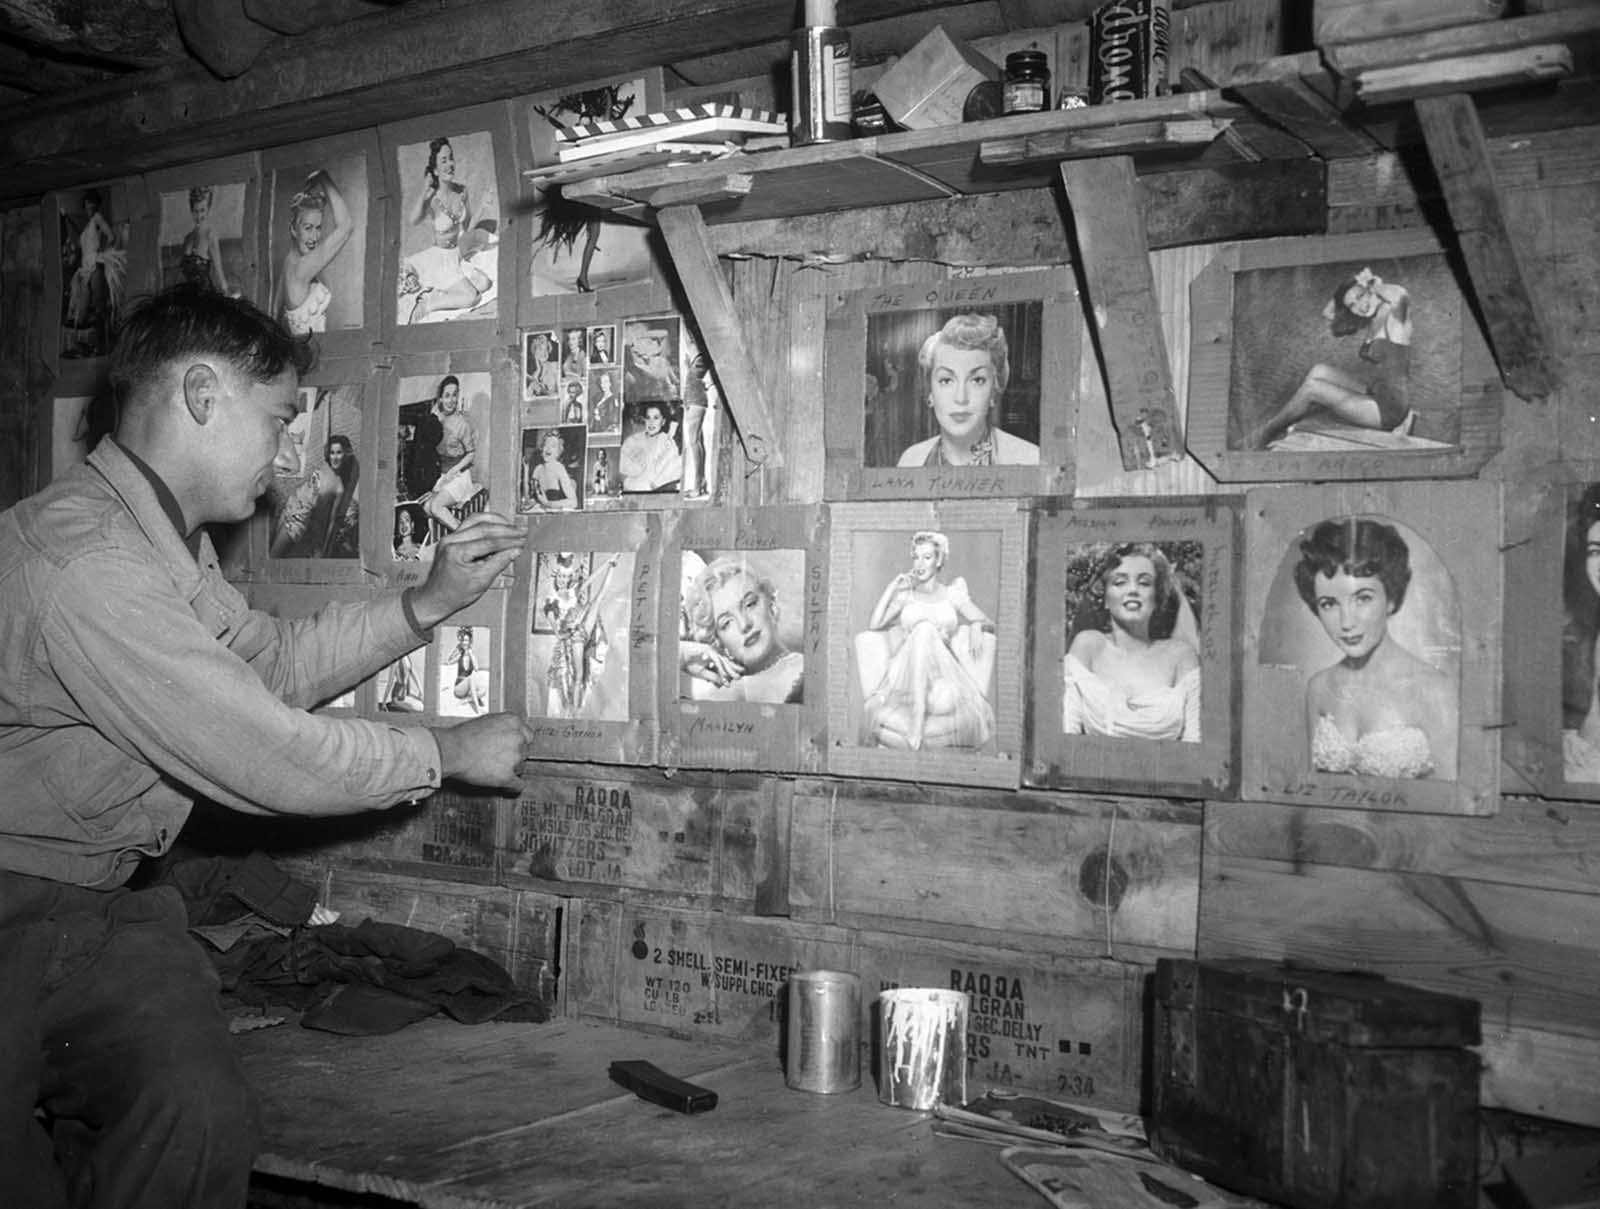 Pfc. Milton Reince of Green Bay, Wisconsin, adds a picture of Mitzi Gaynor to his bunkerful of pinups at his post in Korea on December 18, 1952.